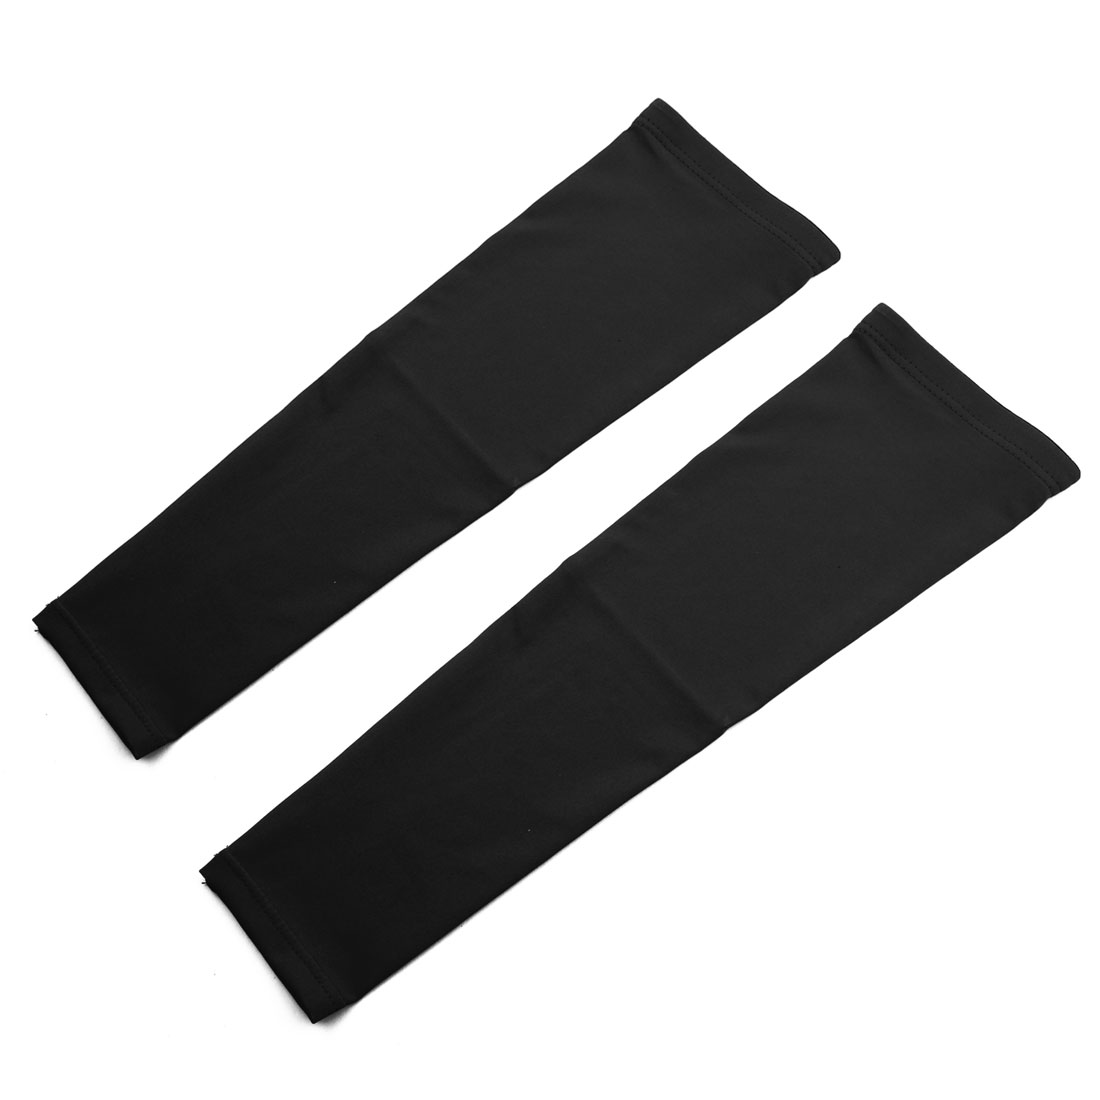 Hands Arm Glove Cycling Activities Skin Protective Cooling Sleeve Black L Pair